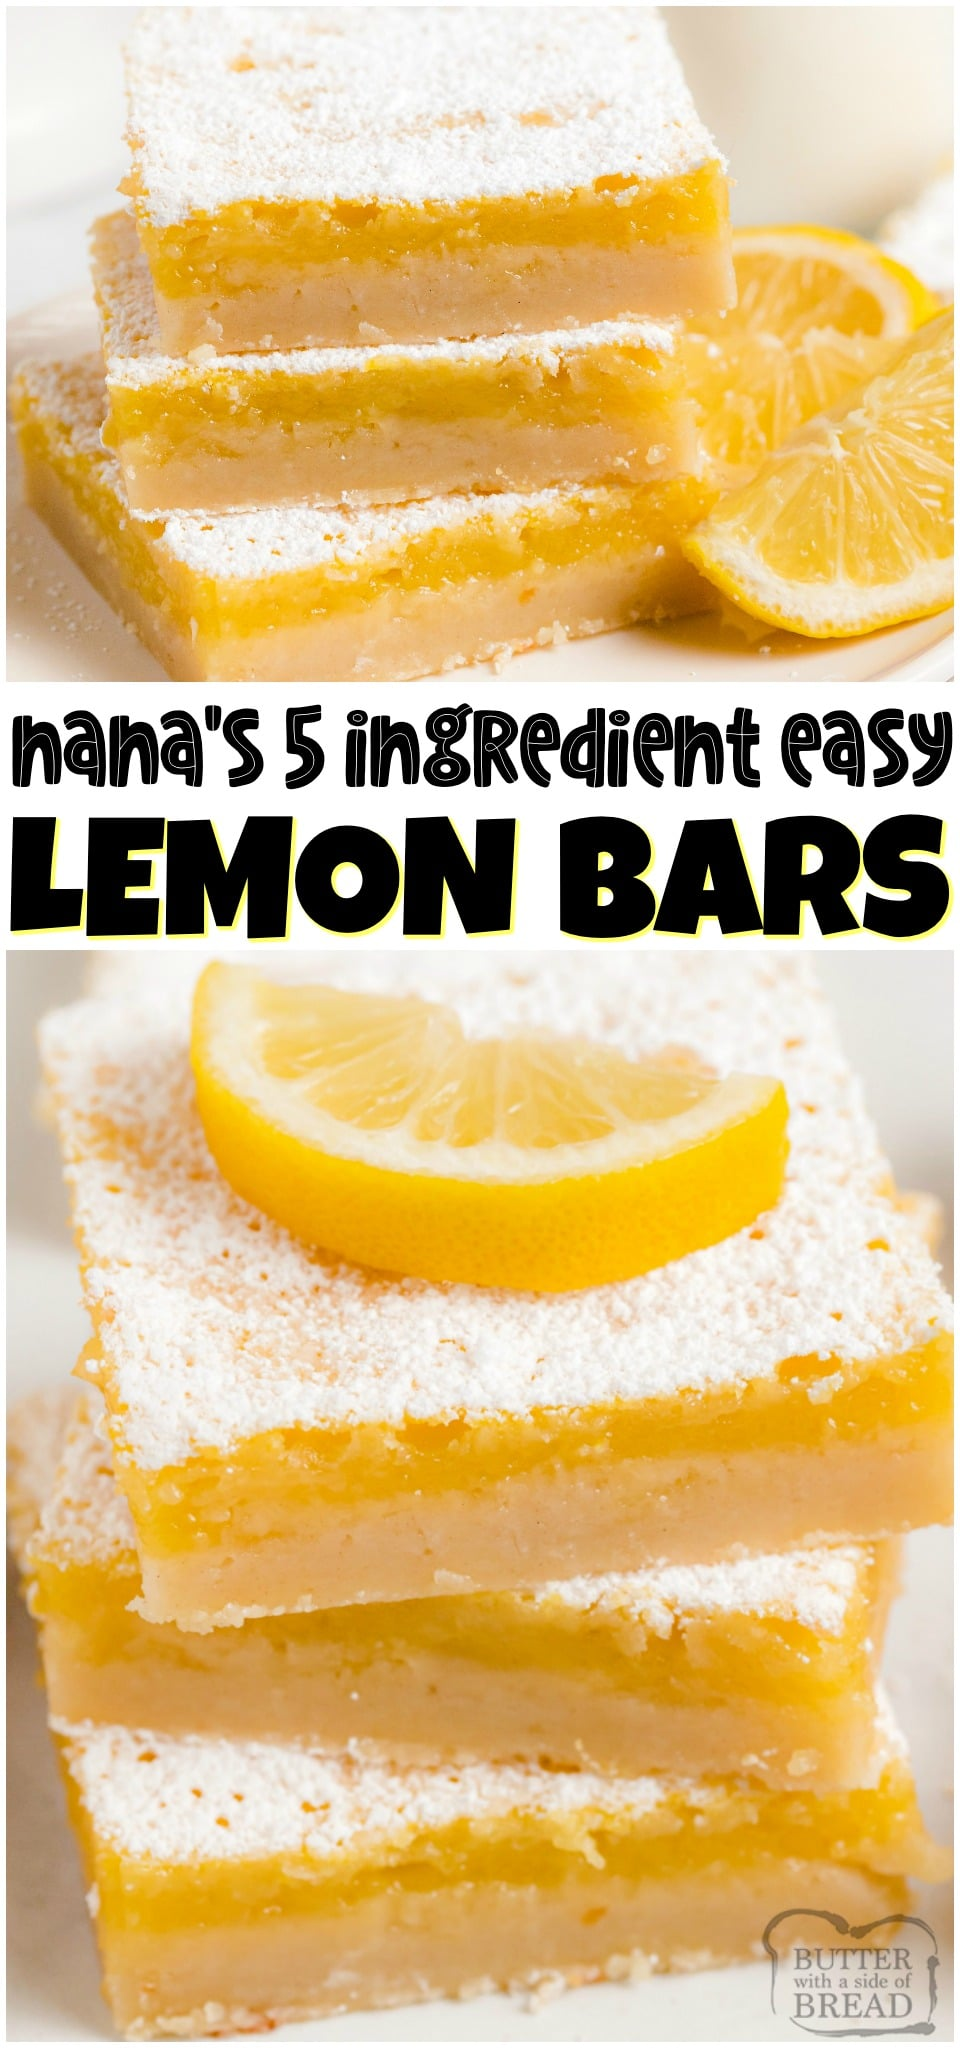 Easy Lemon Bars made with just 5 ingredients! Homemade Lemon Bars recipe made with butter, sugar, eggs and lemon juice for a tasty, tangy lemon dessert!#lemon #lemonbars #dessert #easyrecipe #easy #lemons #baking #recipe from BUTTER WITH A SIDE OF BREAD